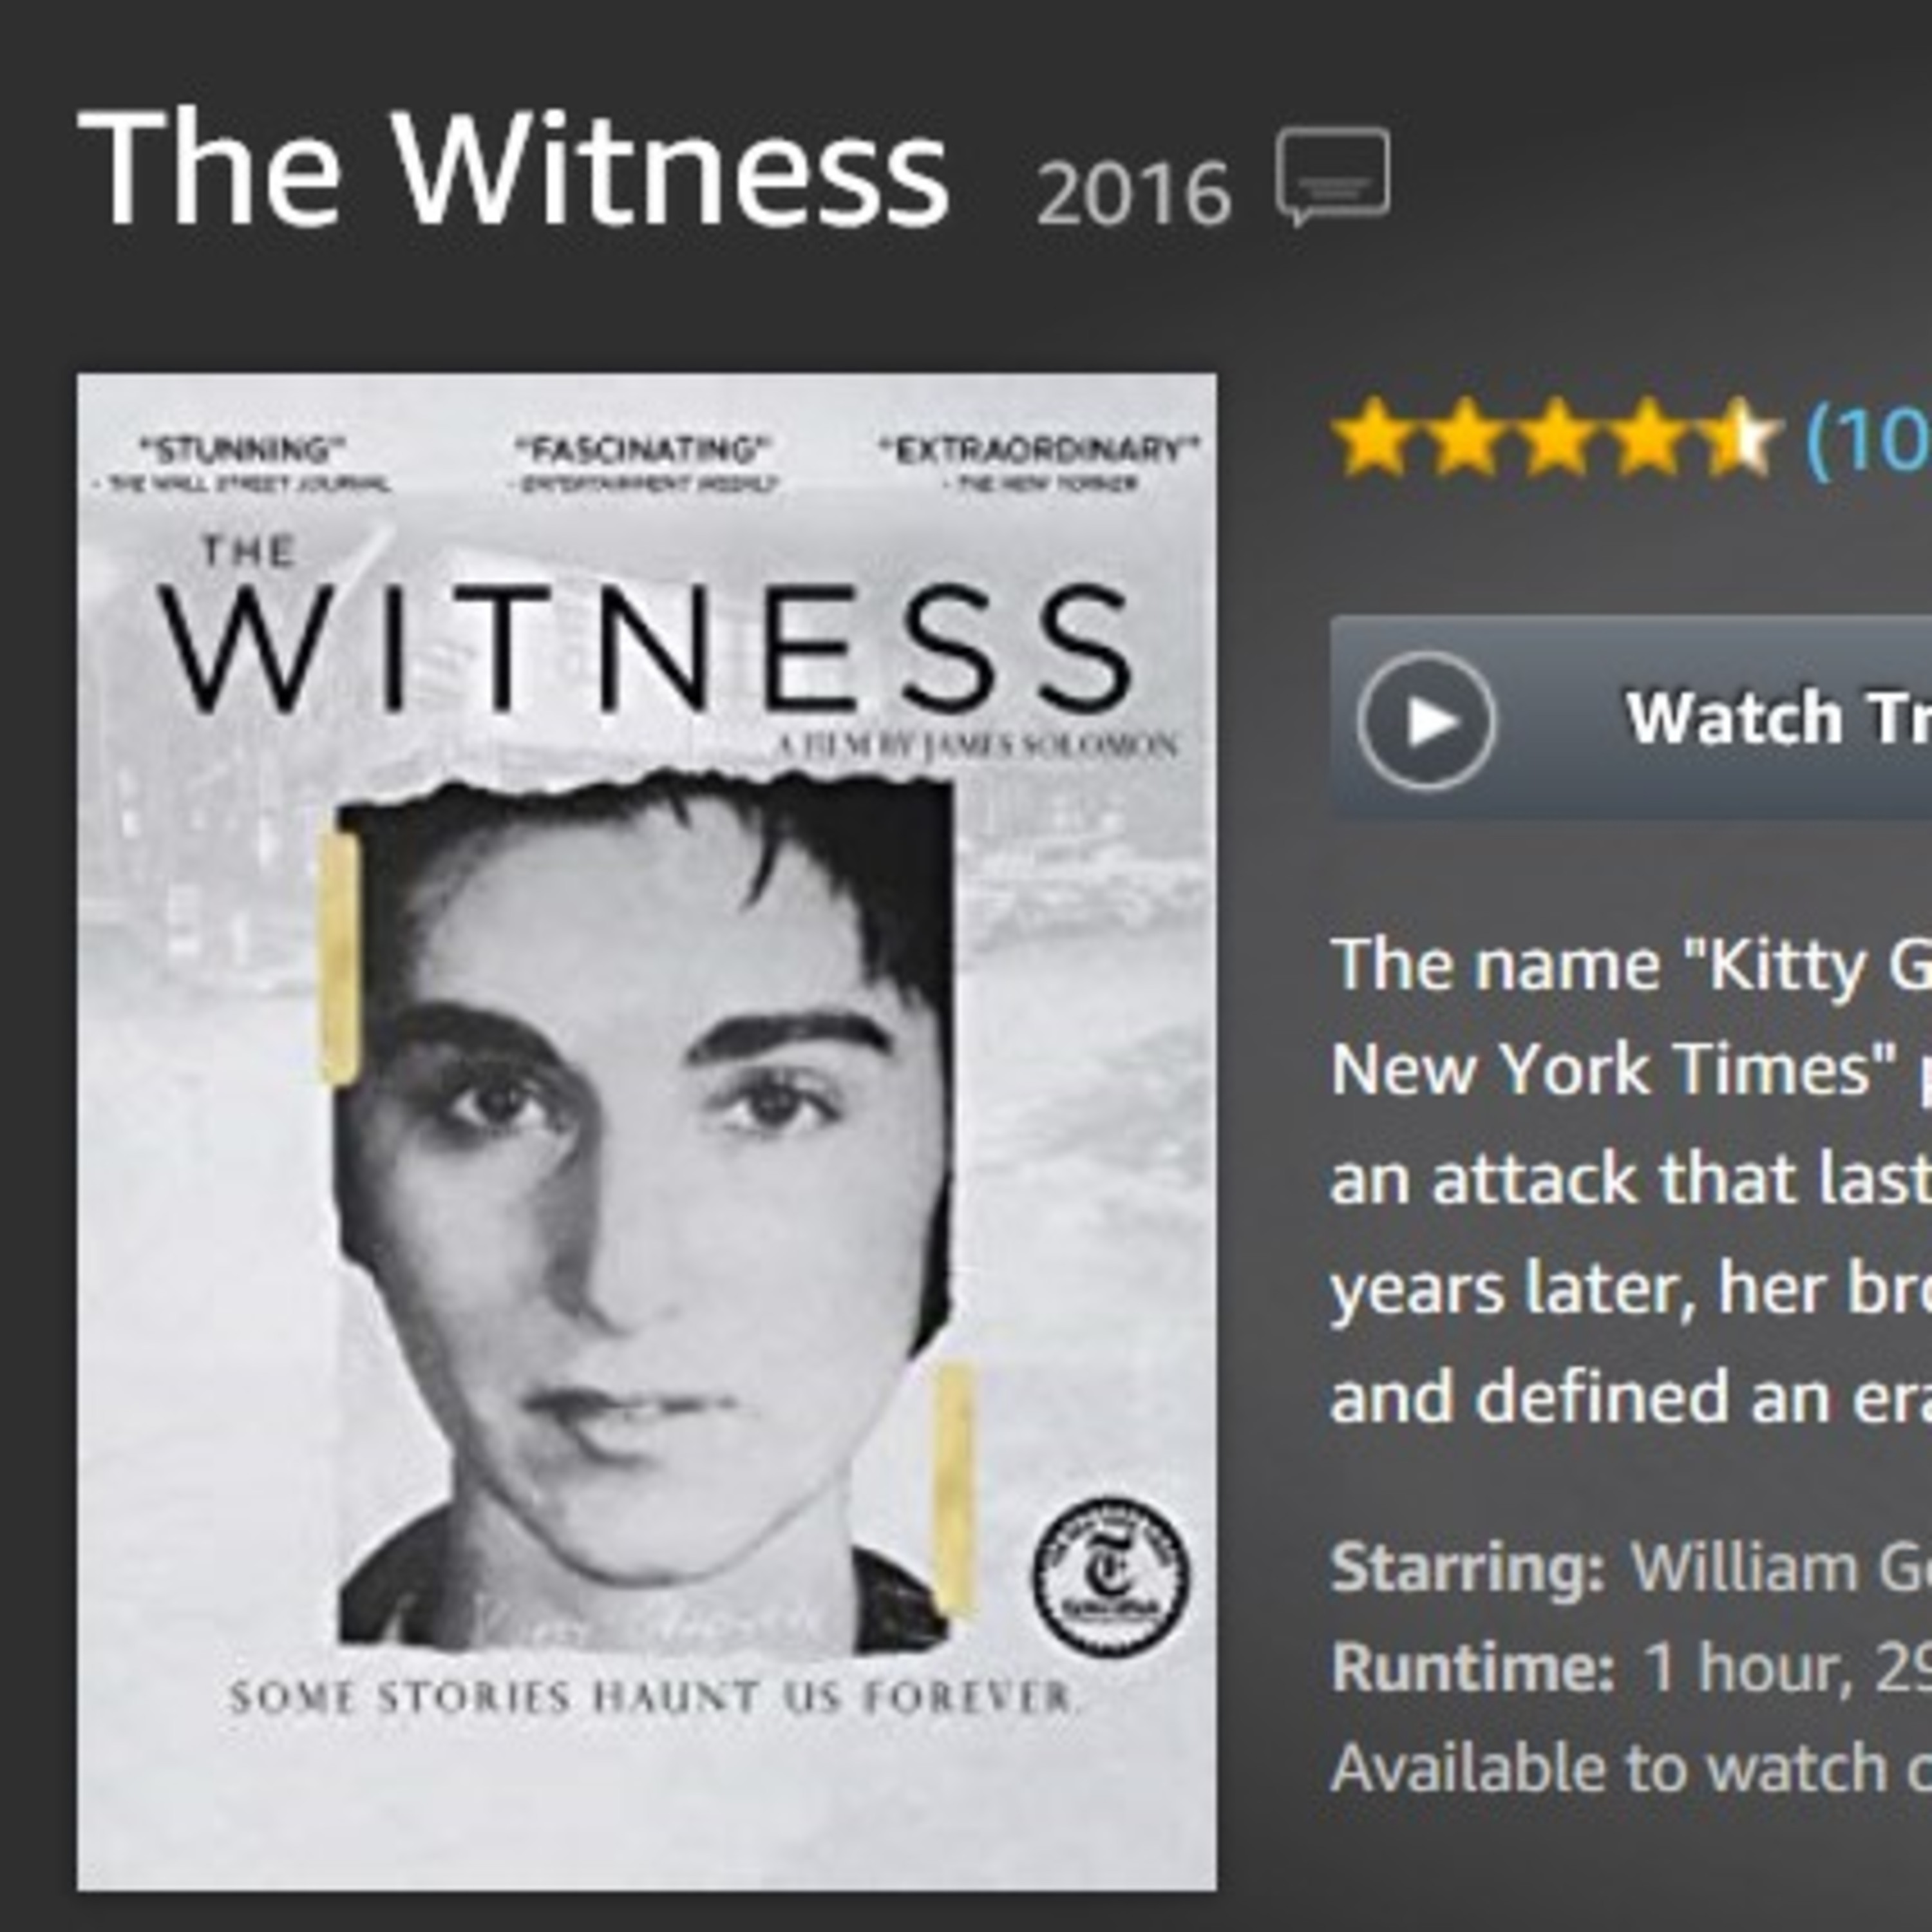 The Real Witness - Myth and Reality in the Kitty Genovese Case